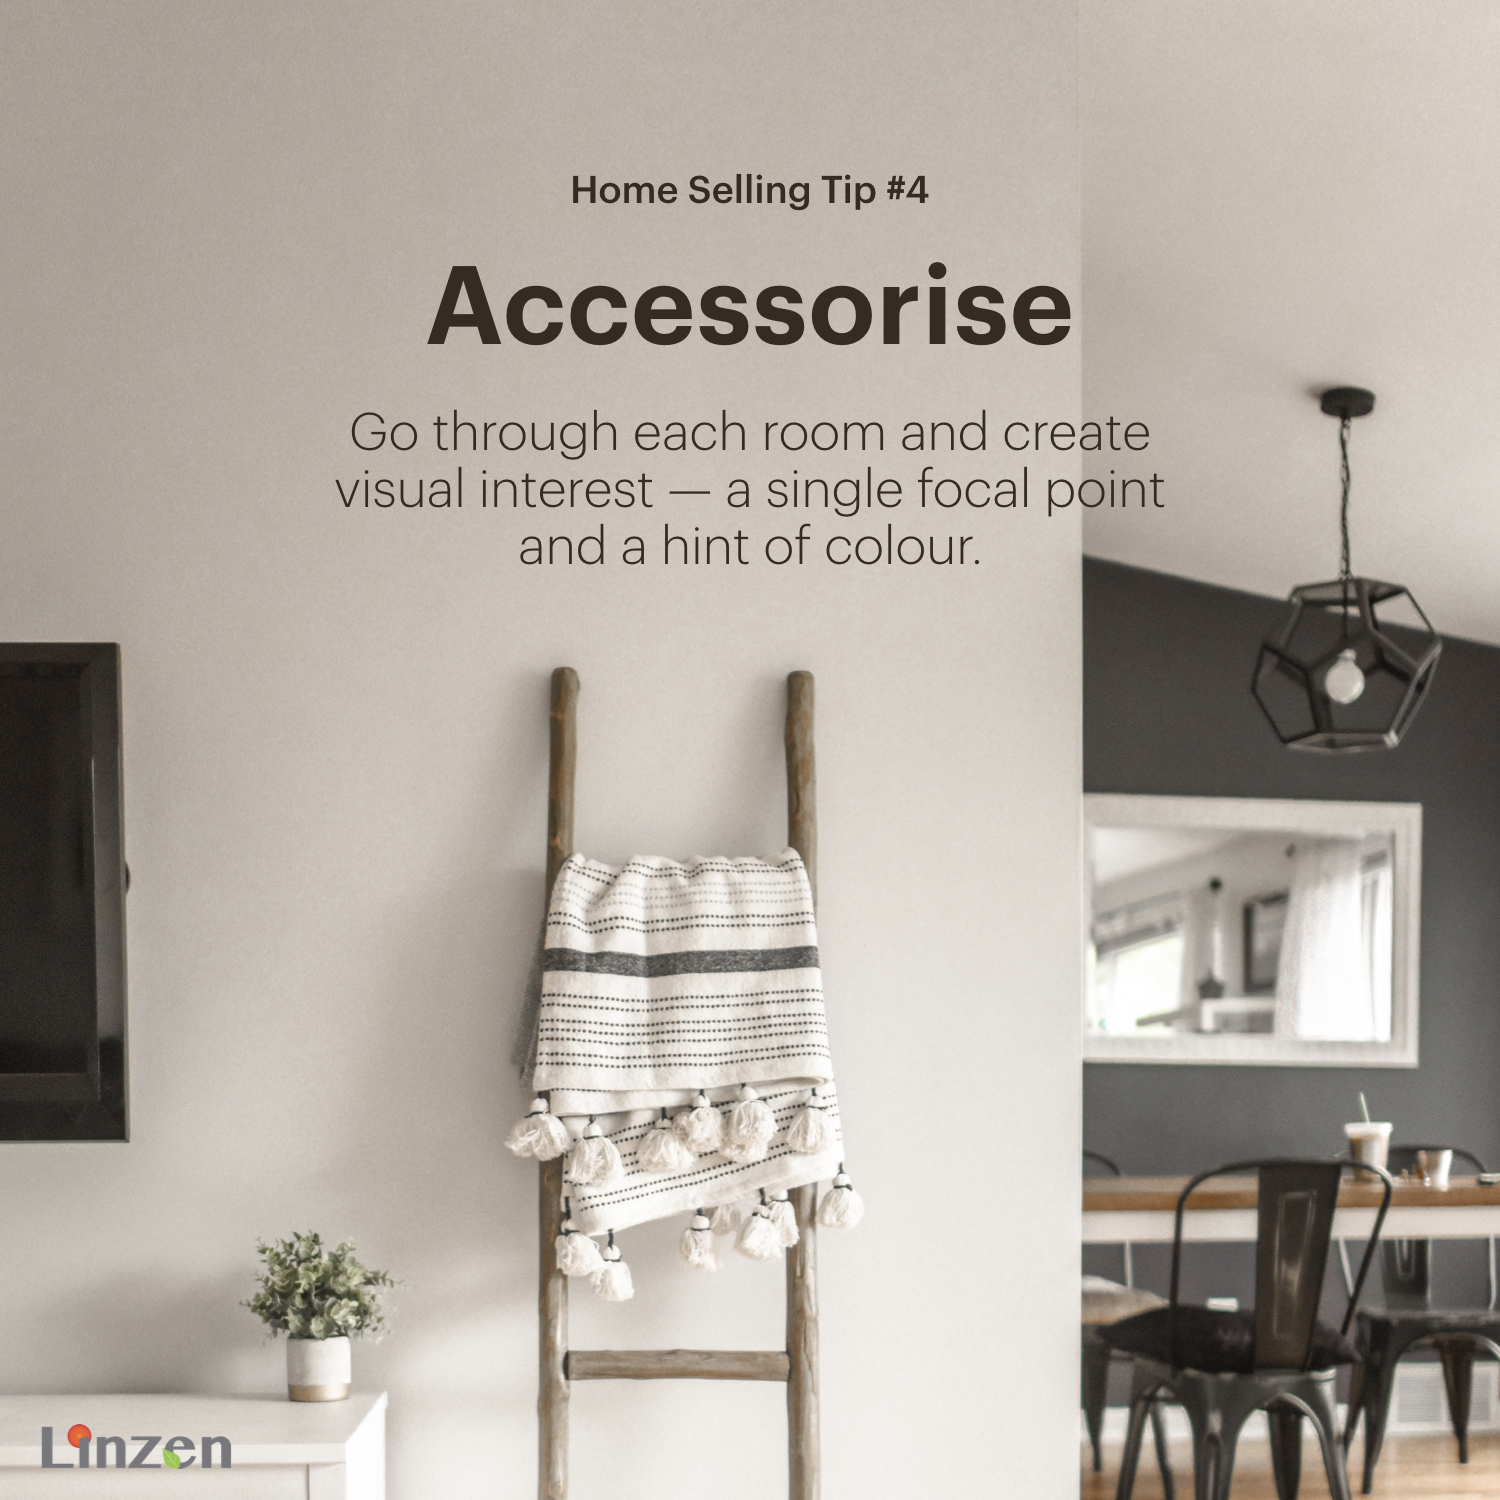 Home Selling Tip #4: Accessorise